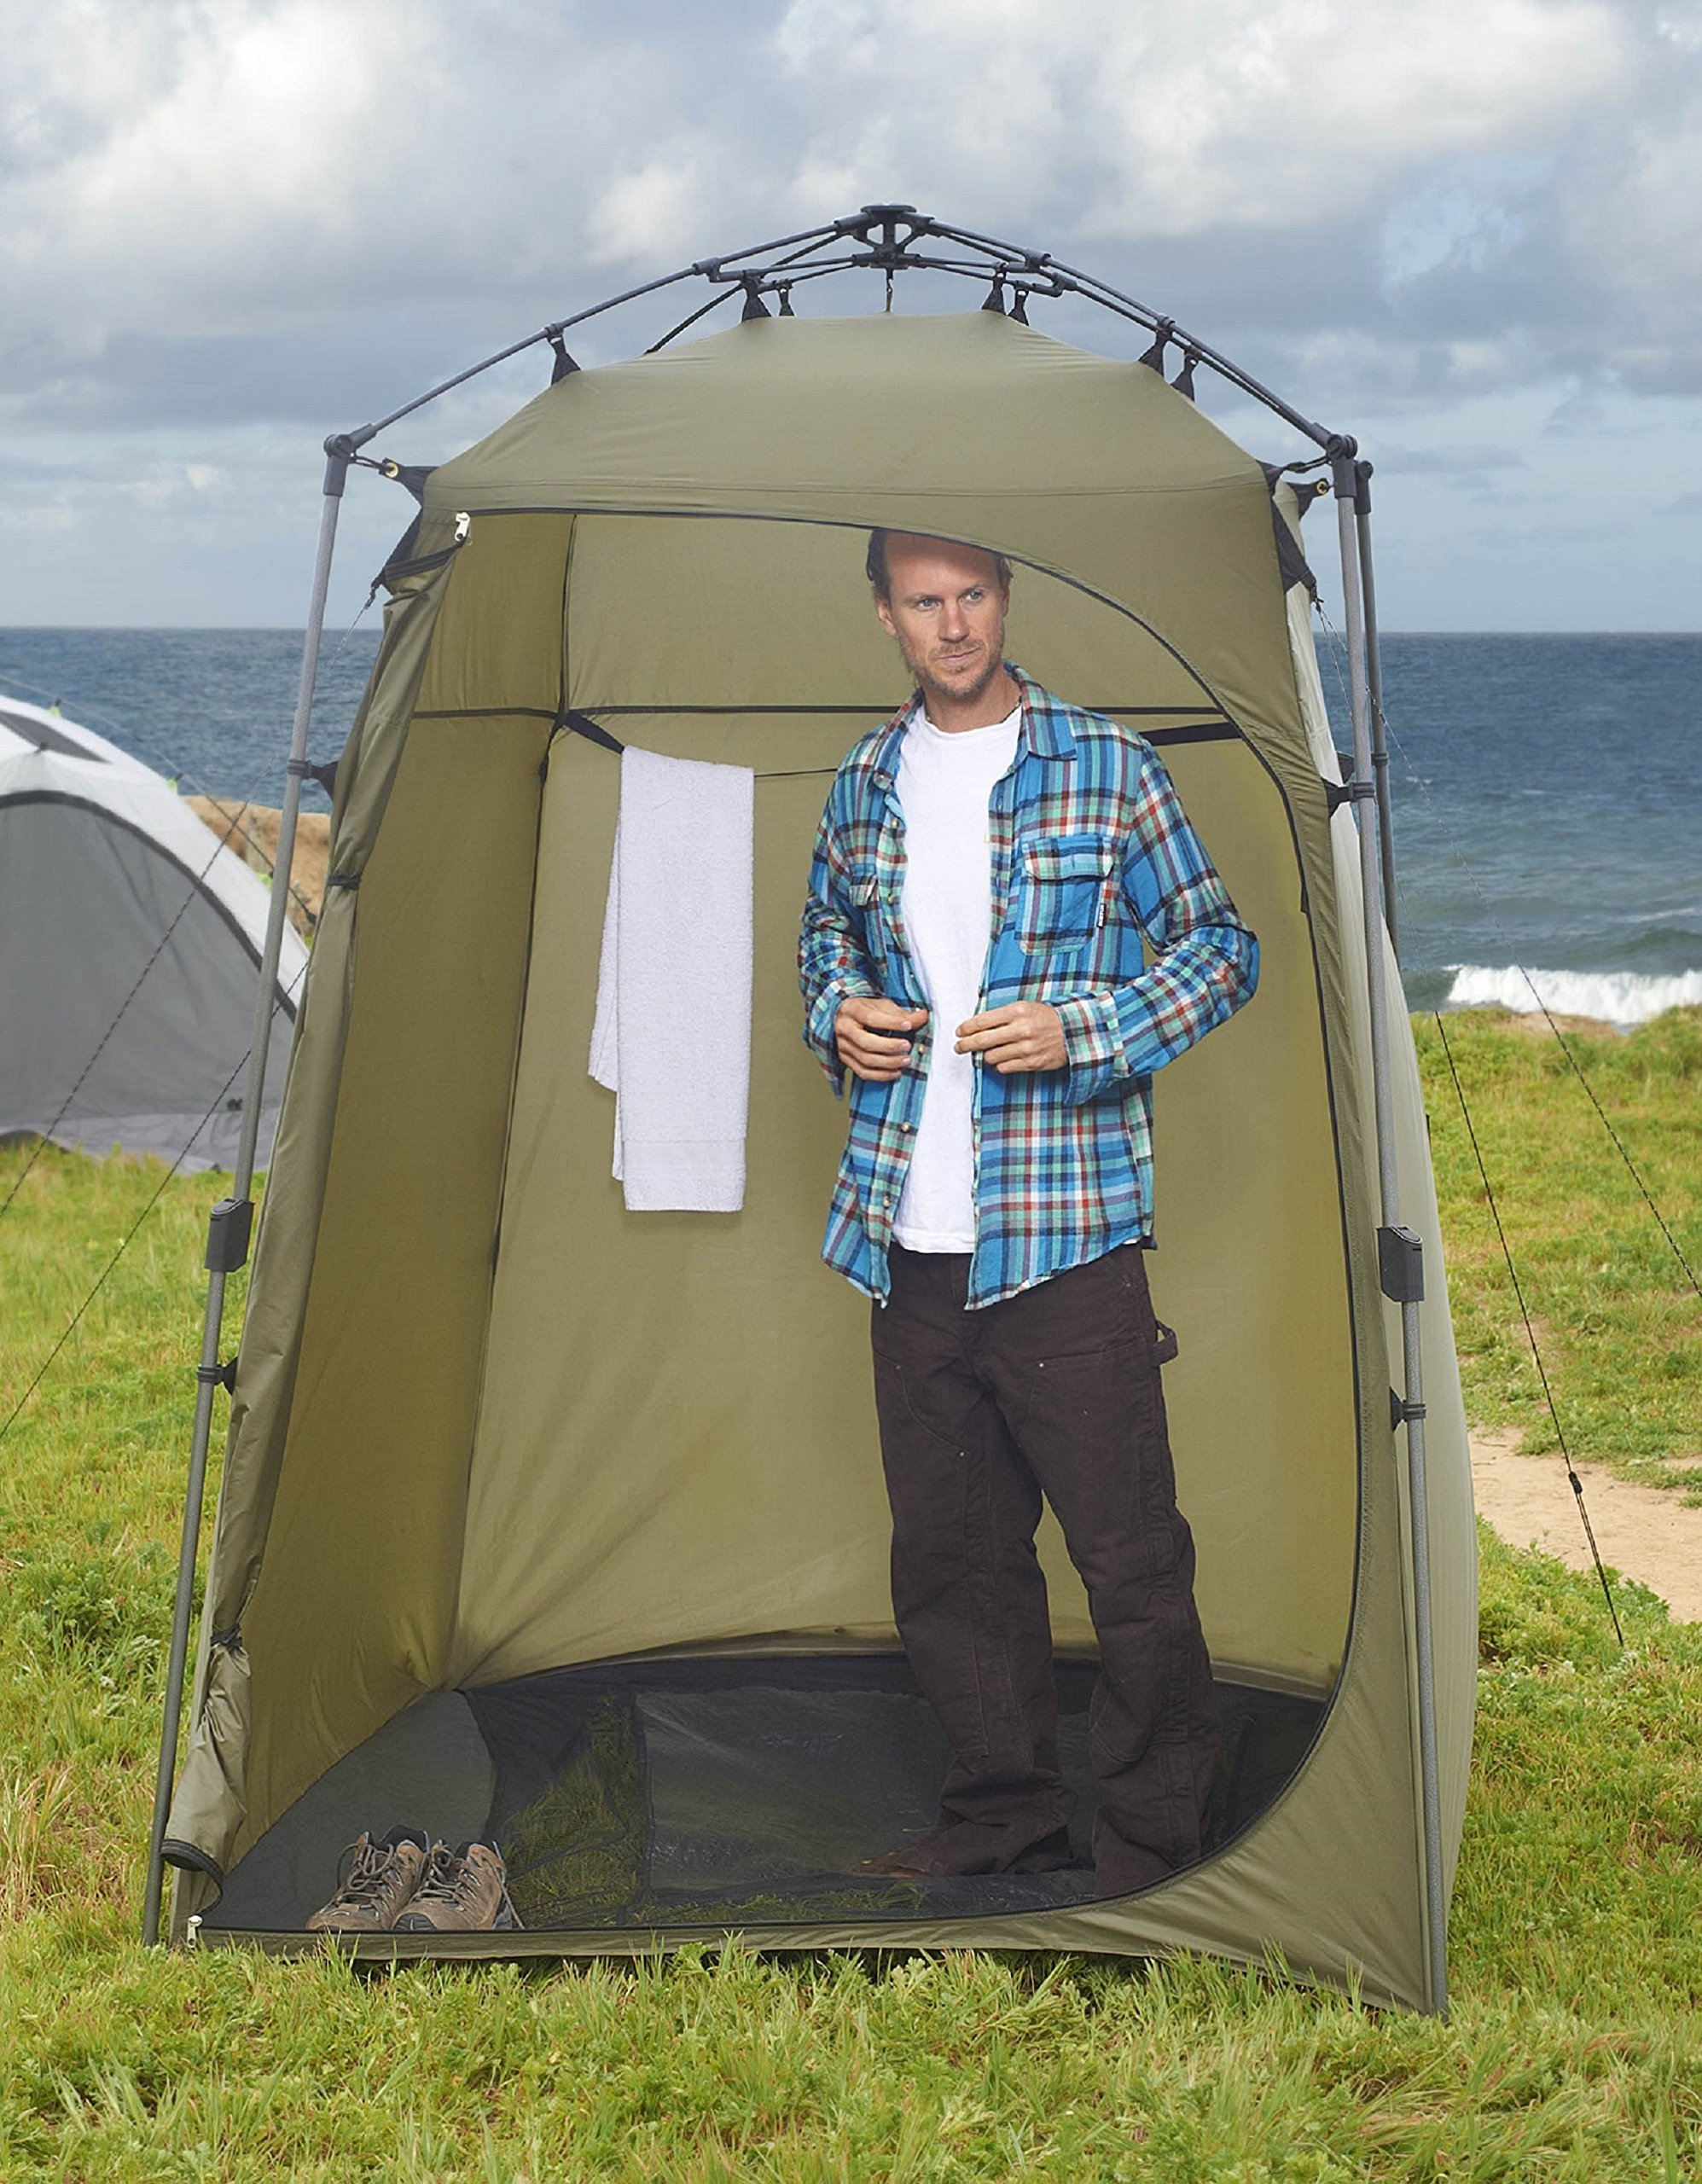 Lightspeed Outdoors Xtra Wide Quick Set Up Privacy Tent, Toilet, Camp Shower, Portable Changing Room by Lightspeed Outdoors (Image #1)